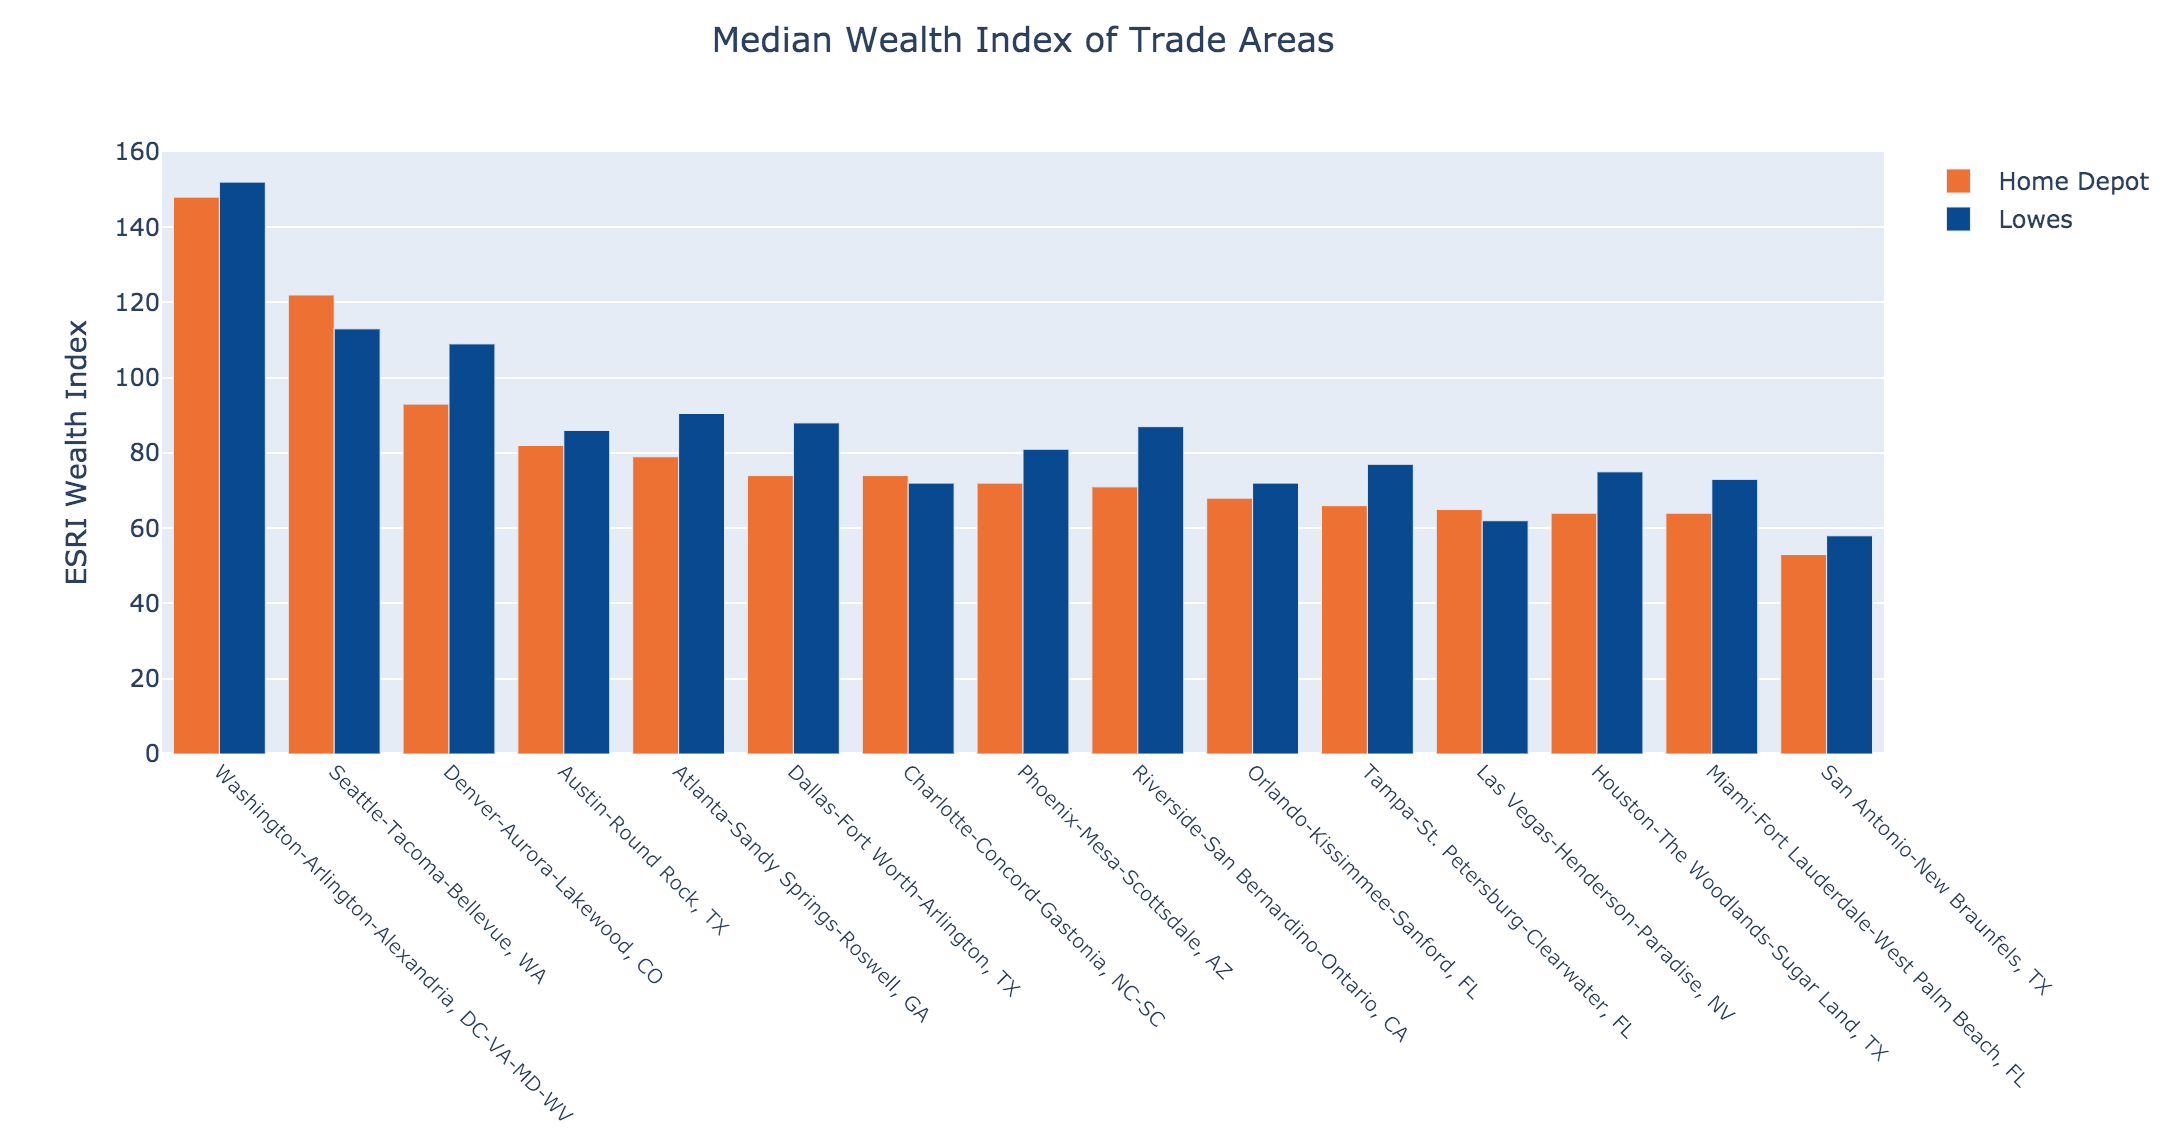 Median Wealth Index per Trade Area